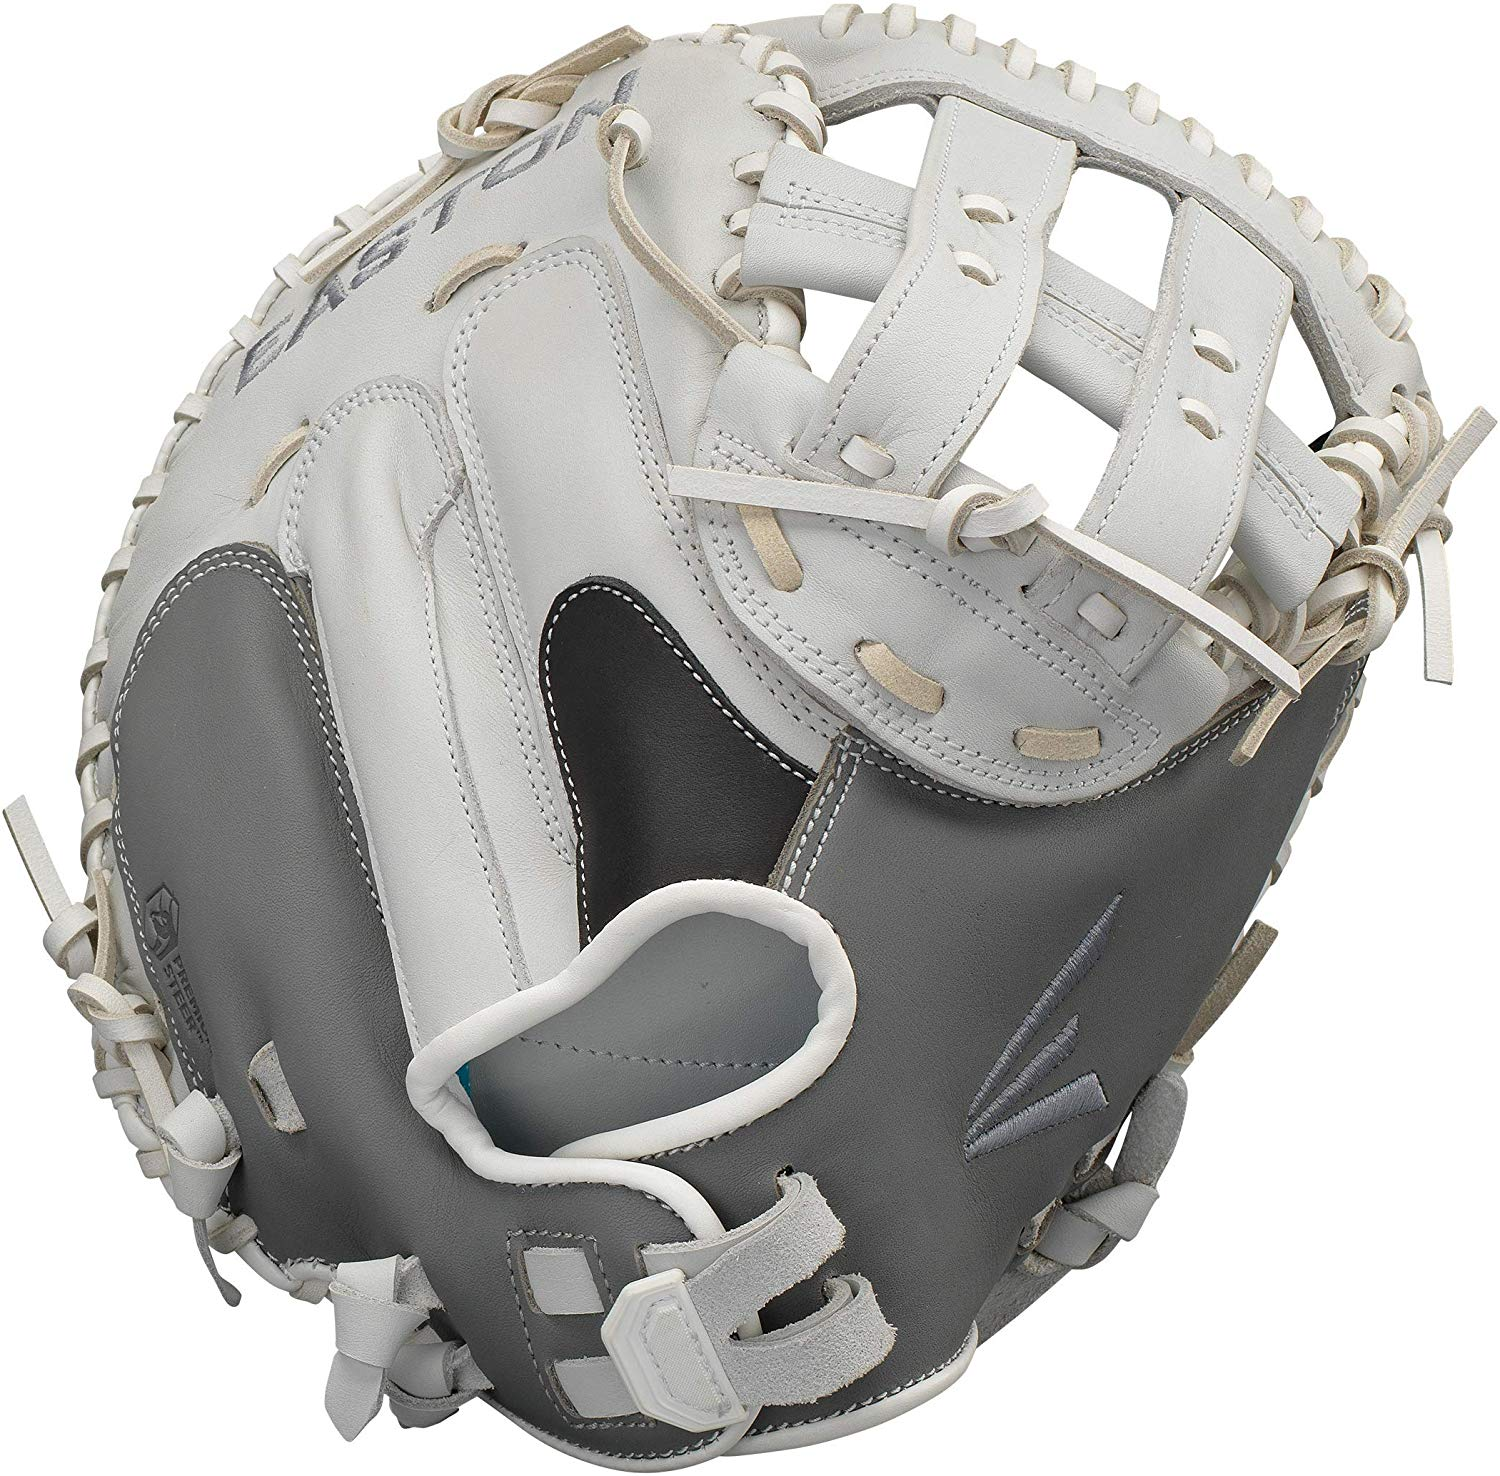 easton-ghost-fastpitch-softball-catchers-mitt-34-right-hand-throw GH21FP-RightHandThrow  628412270110 Premium Steer USA leather Quantum Closure SystemTM provides adjustable hand opening